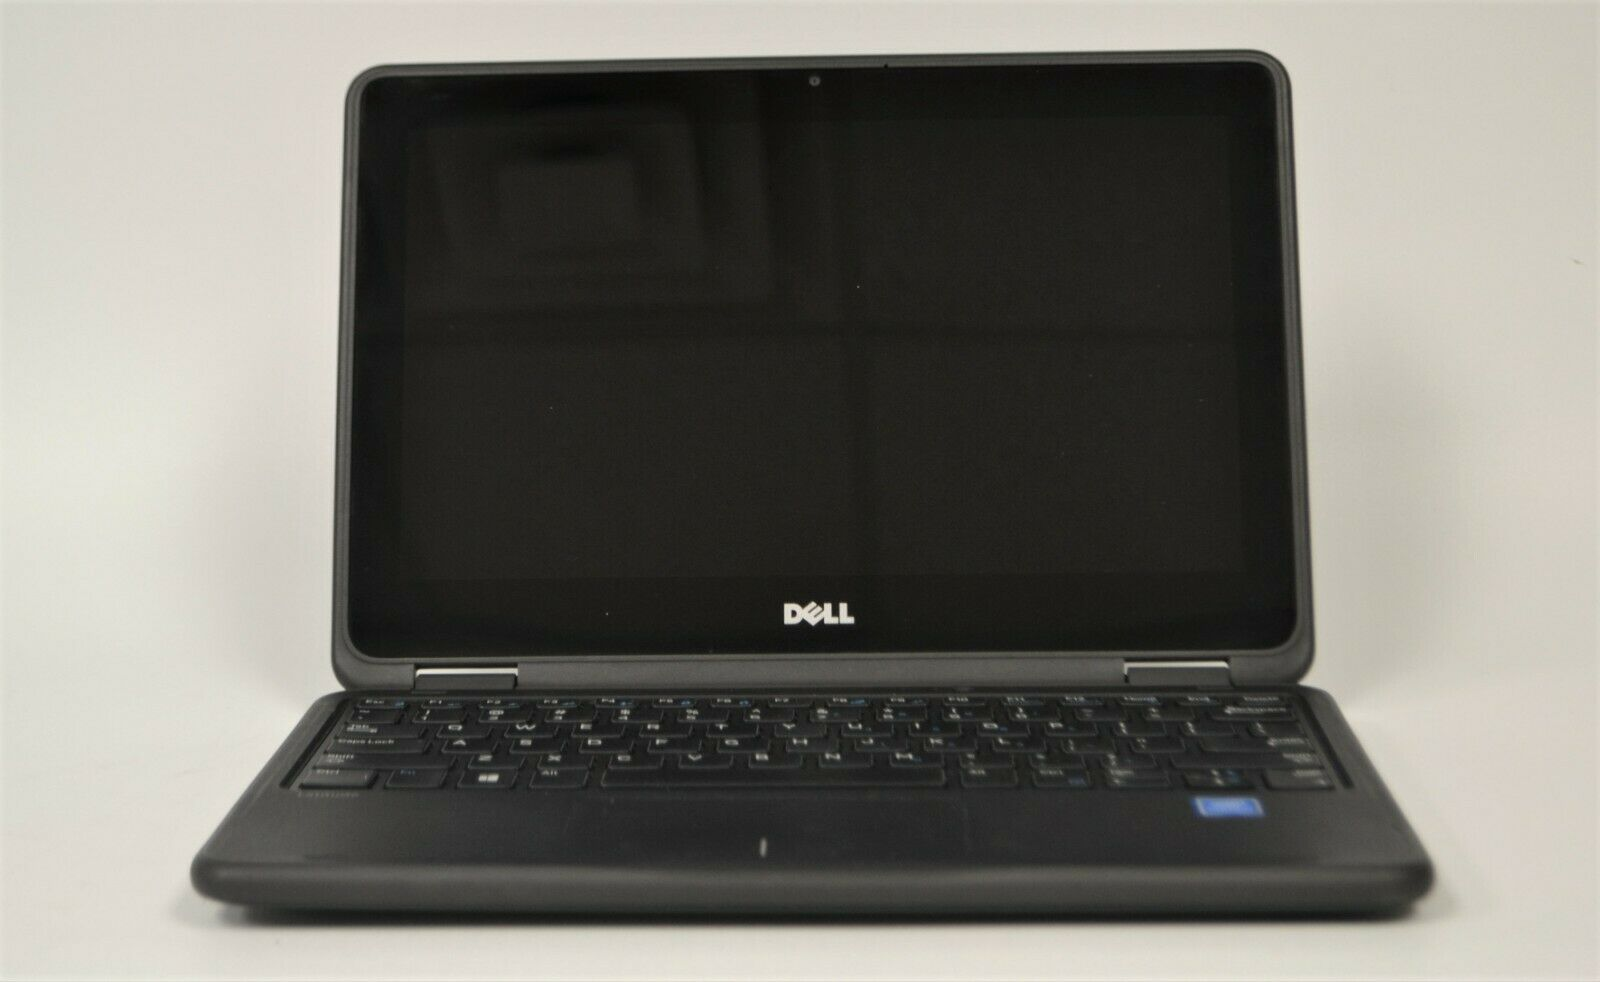 Laptop Windows - Dell Latitude 3189 2-in-1 Touchscreen Laptop Tablet Win 10Home 4GB RAM 128GB SSD